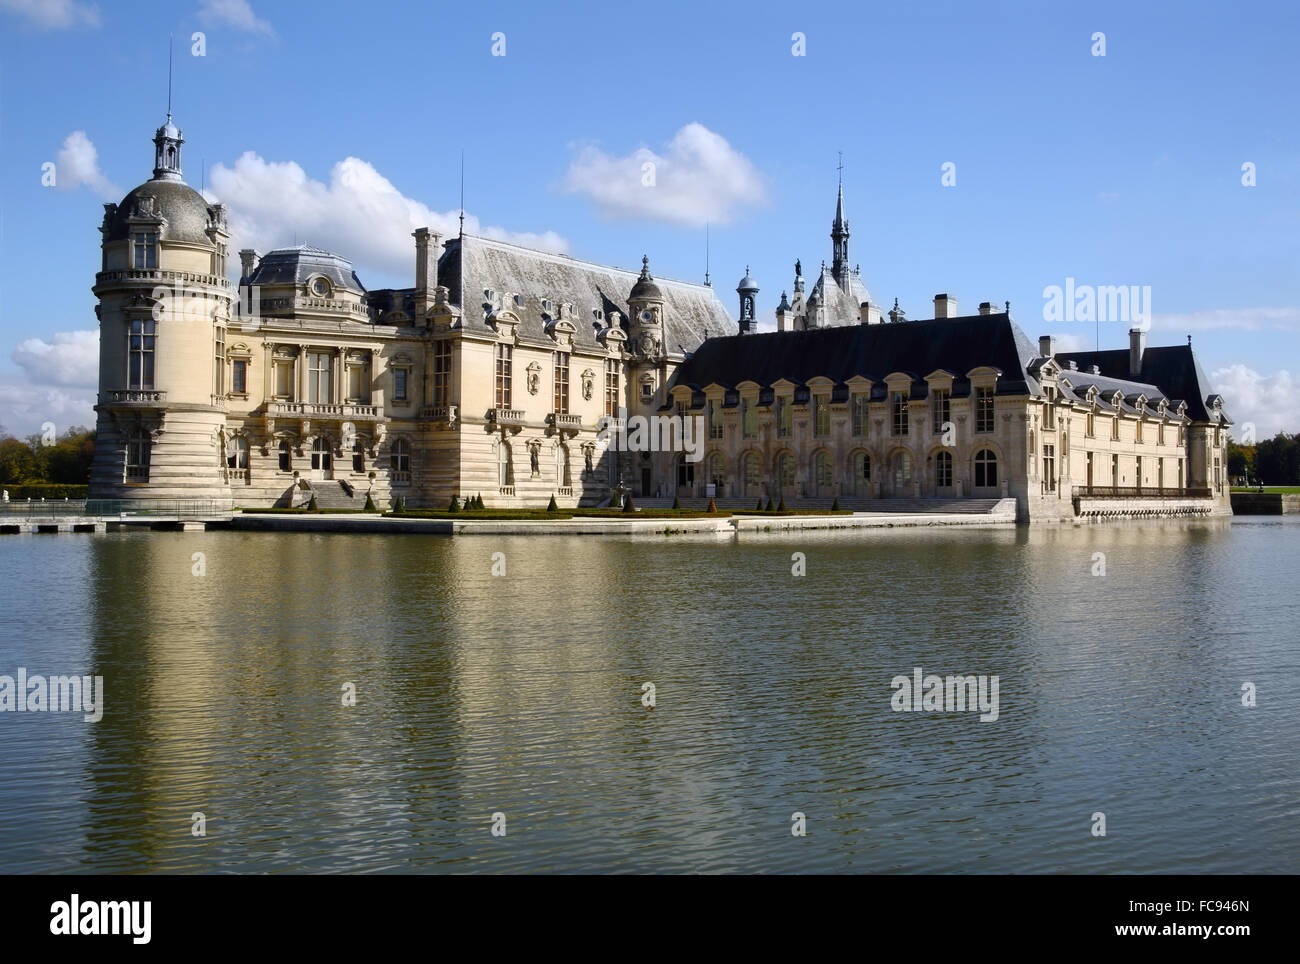 Chateau Chantilly across the moat, Chantilly, Oise, France, Europe Stock Photo